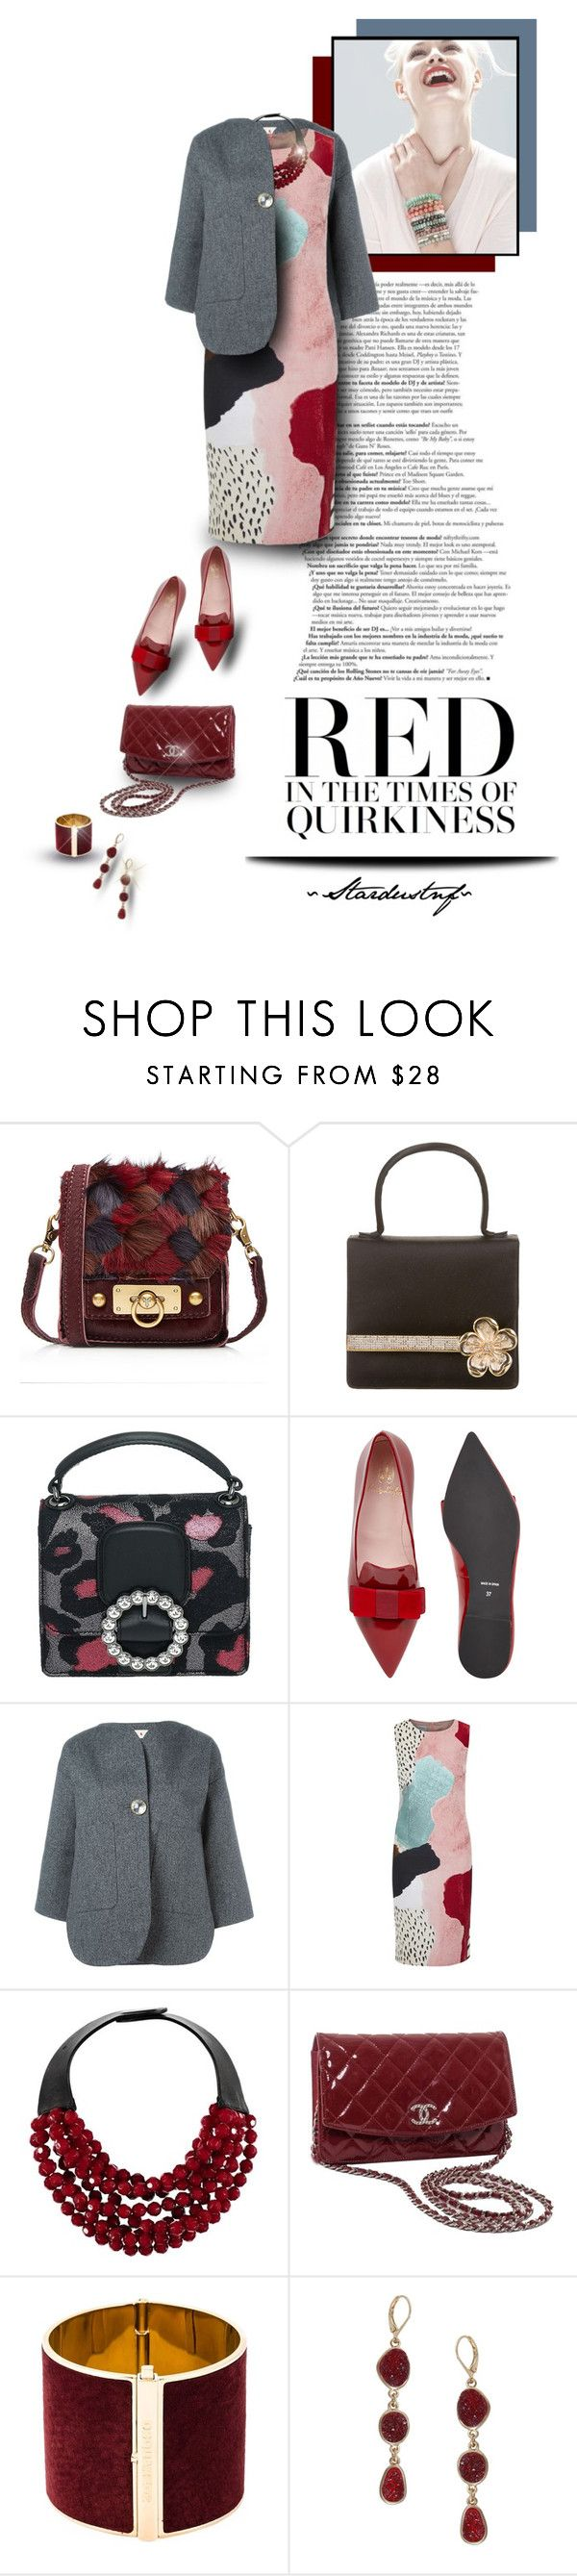 """Red in the Times of Quirkiness"" by stardustnf ❤ liked on Polyvore featuring GINTA, Anna Sui, Judith Leiber, Marc by Marc Jacobs, Pretty Ballerinas, Marni, Trilogy, philosophy, Fairchild Baldwin and Chanel"